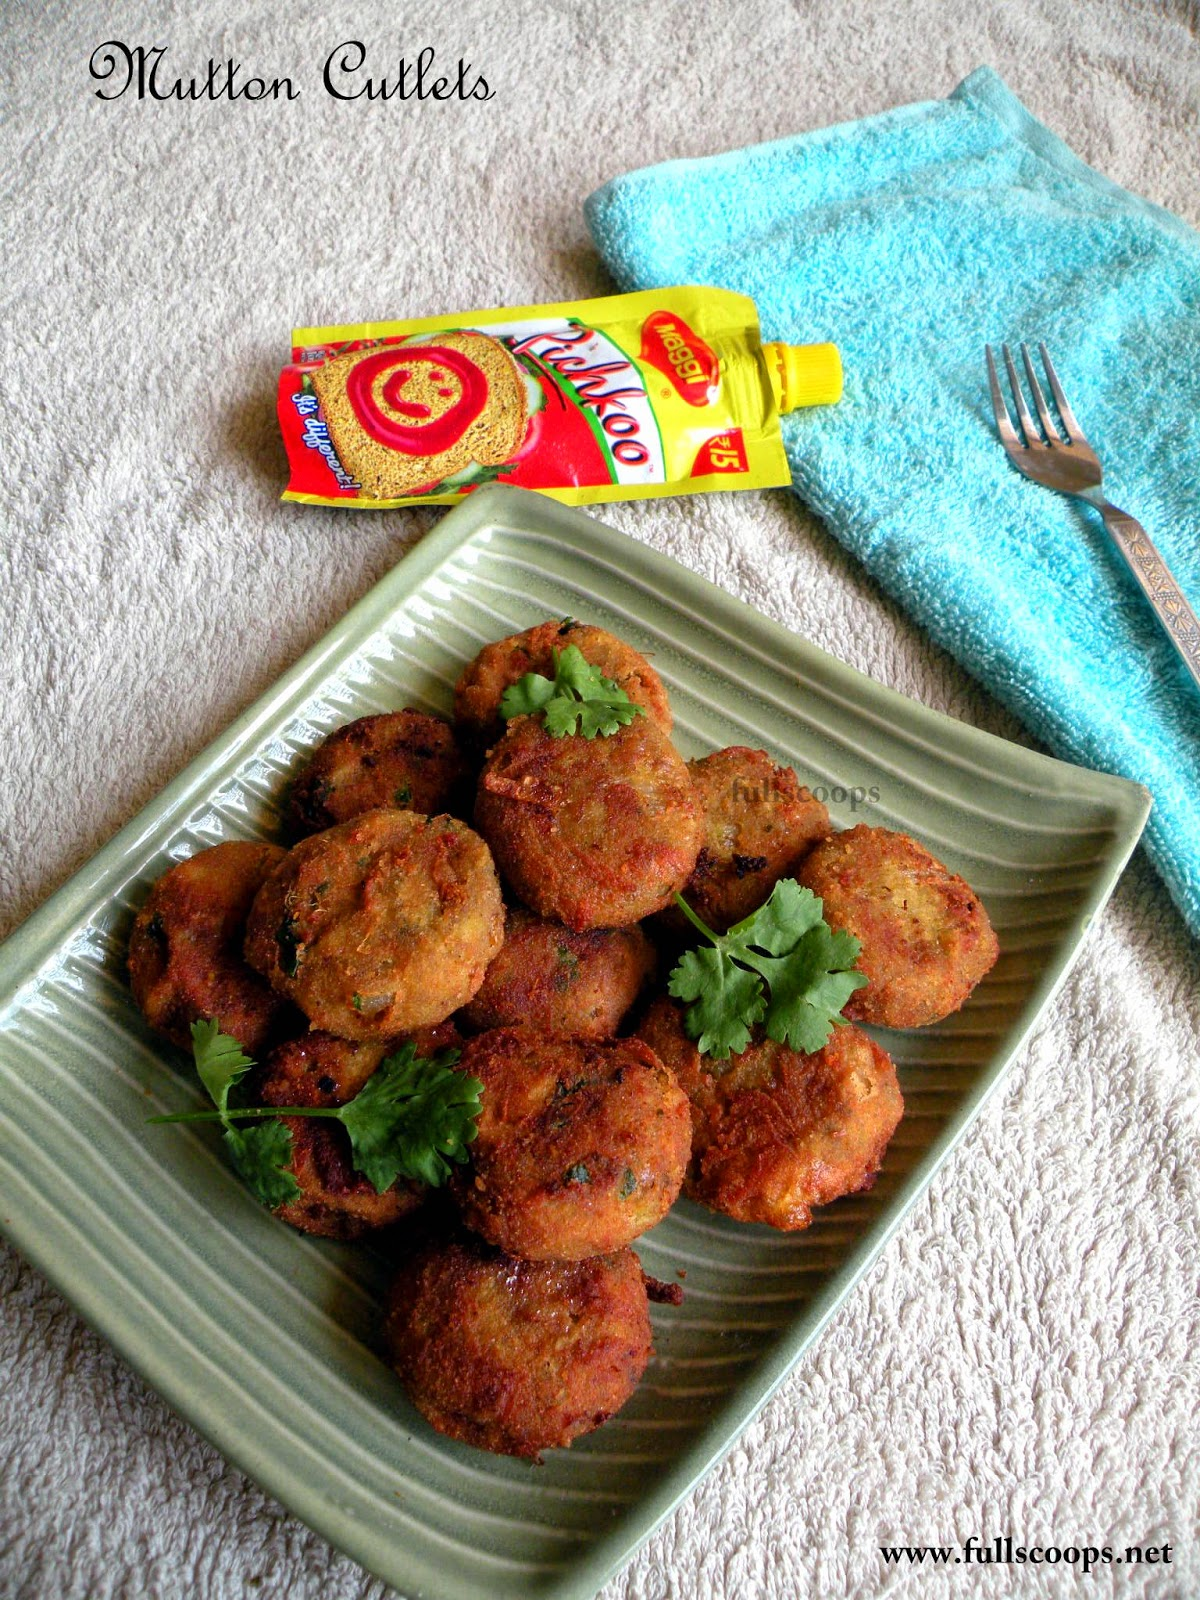 Mutton Cutlets / Lamb Patties